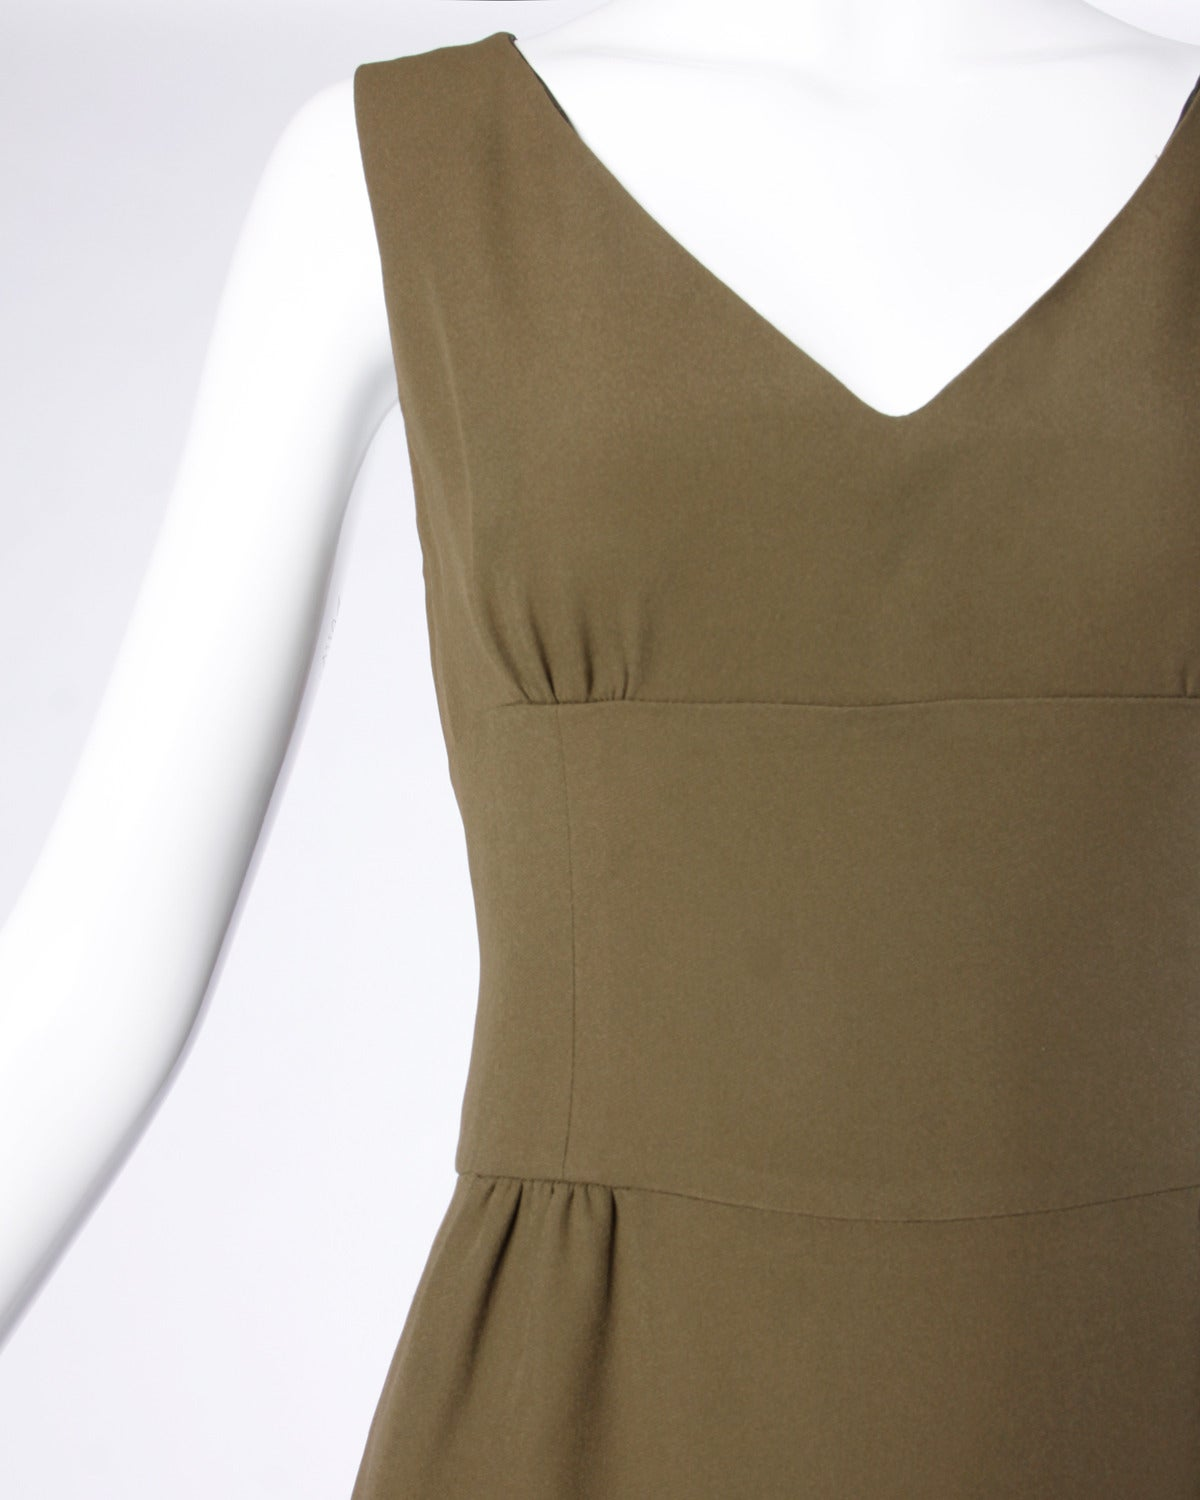 Moschino Vintage 1990s 90s Minimalist Olive Green Maxi Dress In Excellent Condition For Sale In Sparks, NV